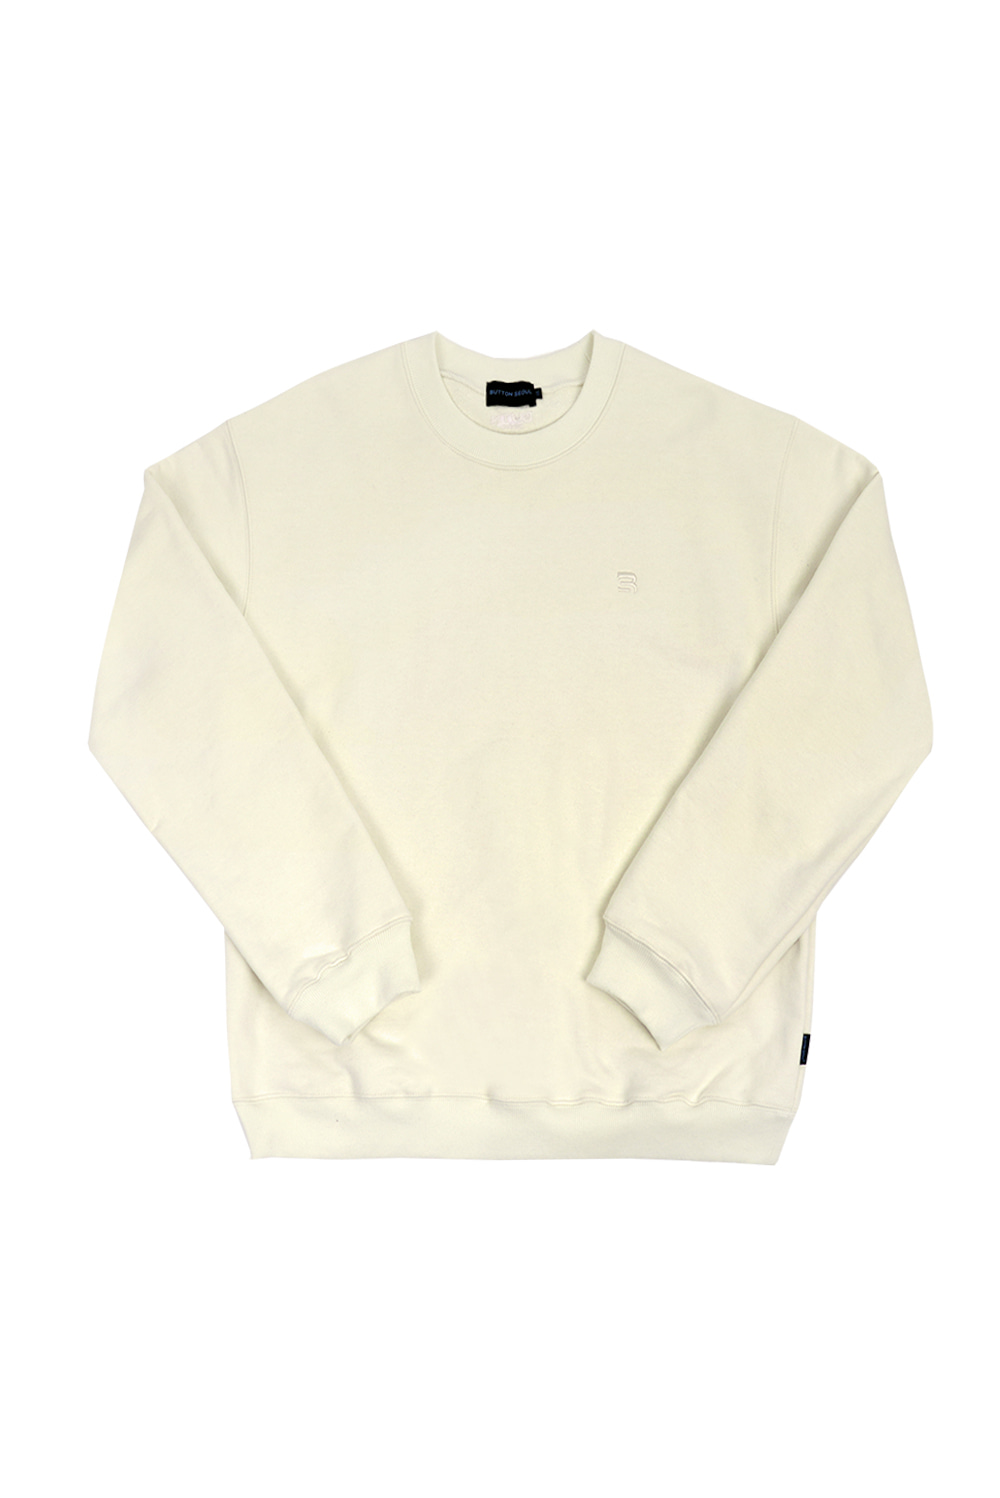 OverSize Heavy Sweat Shirt (Cream)